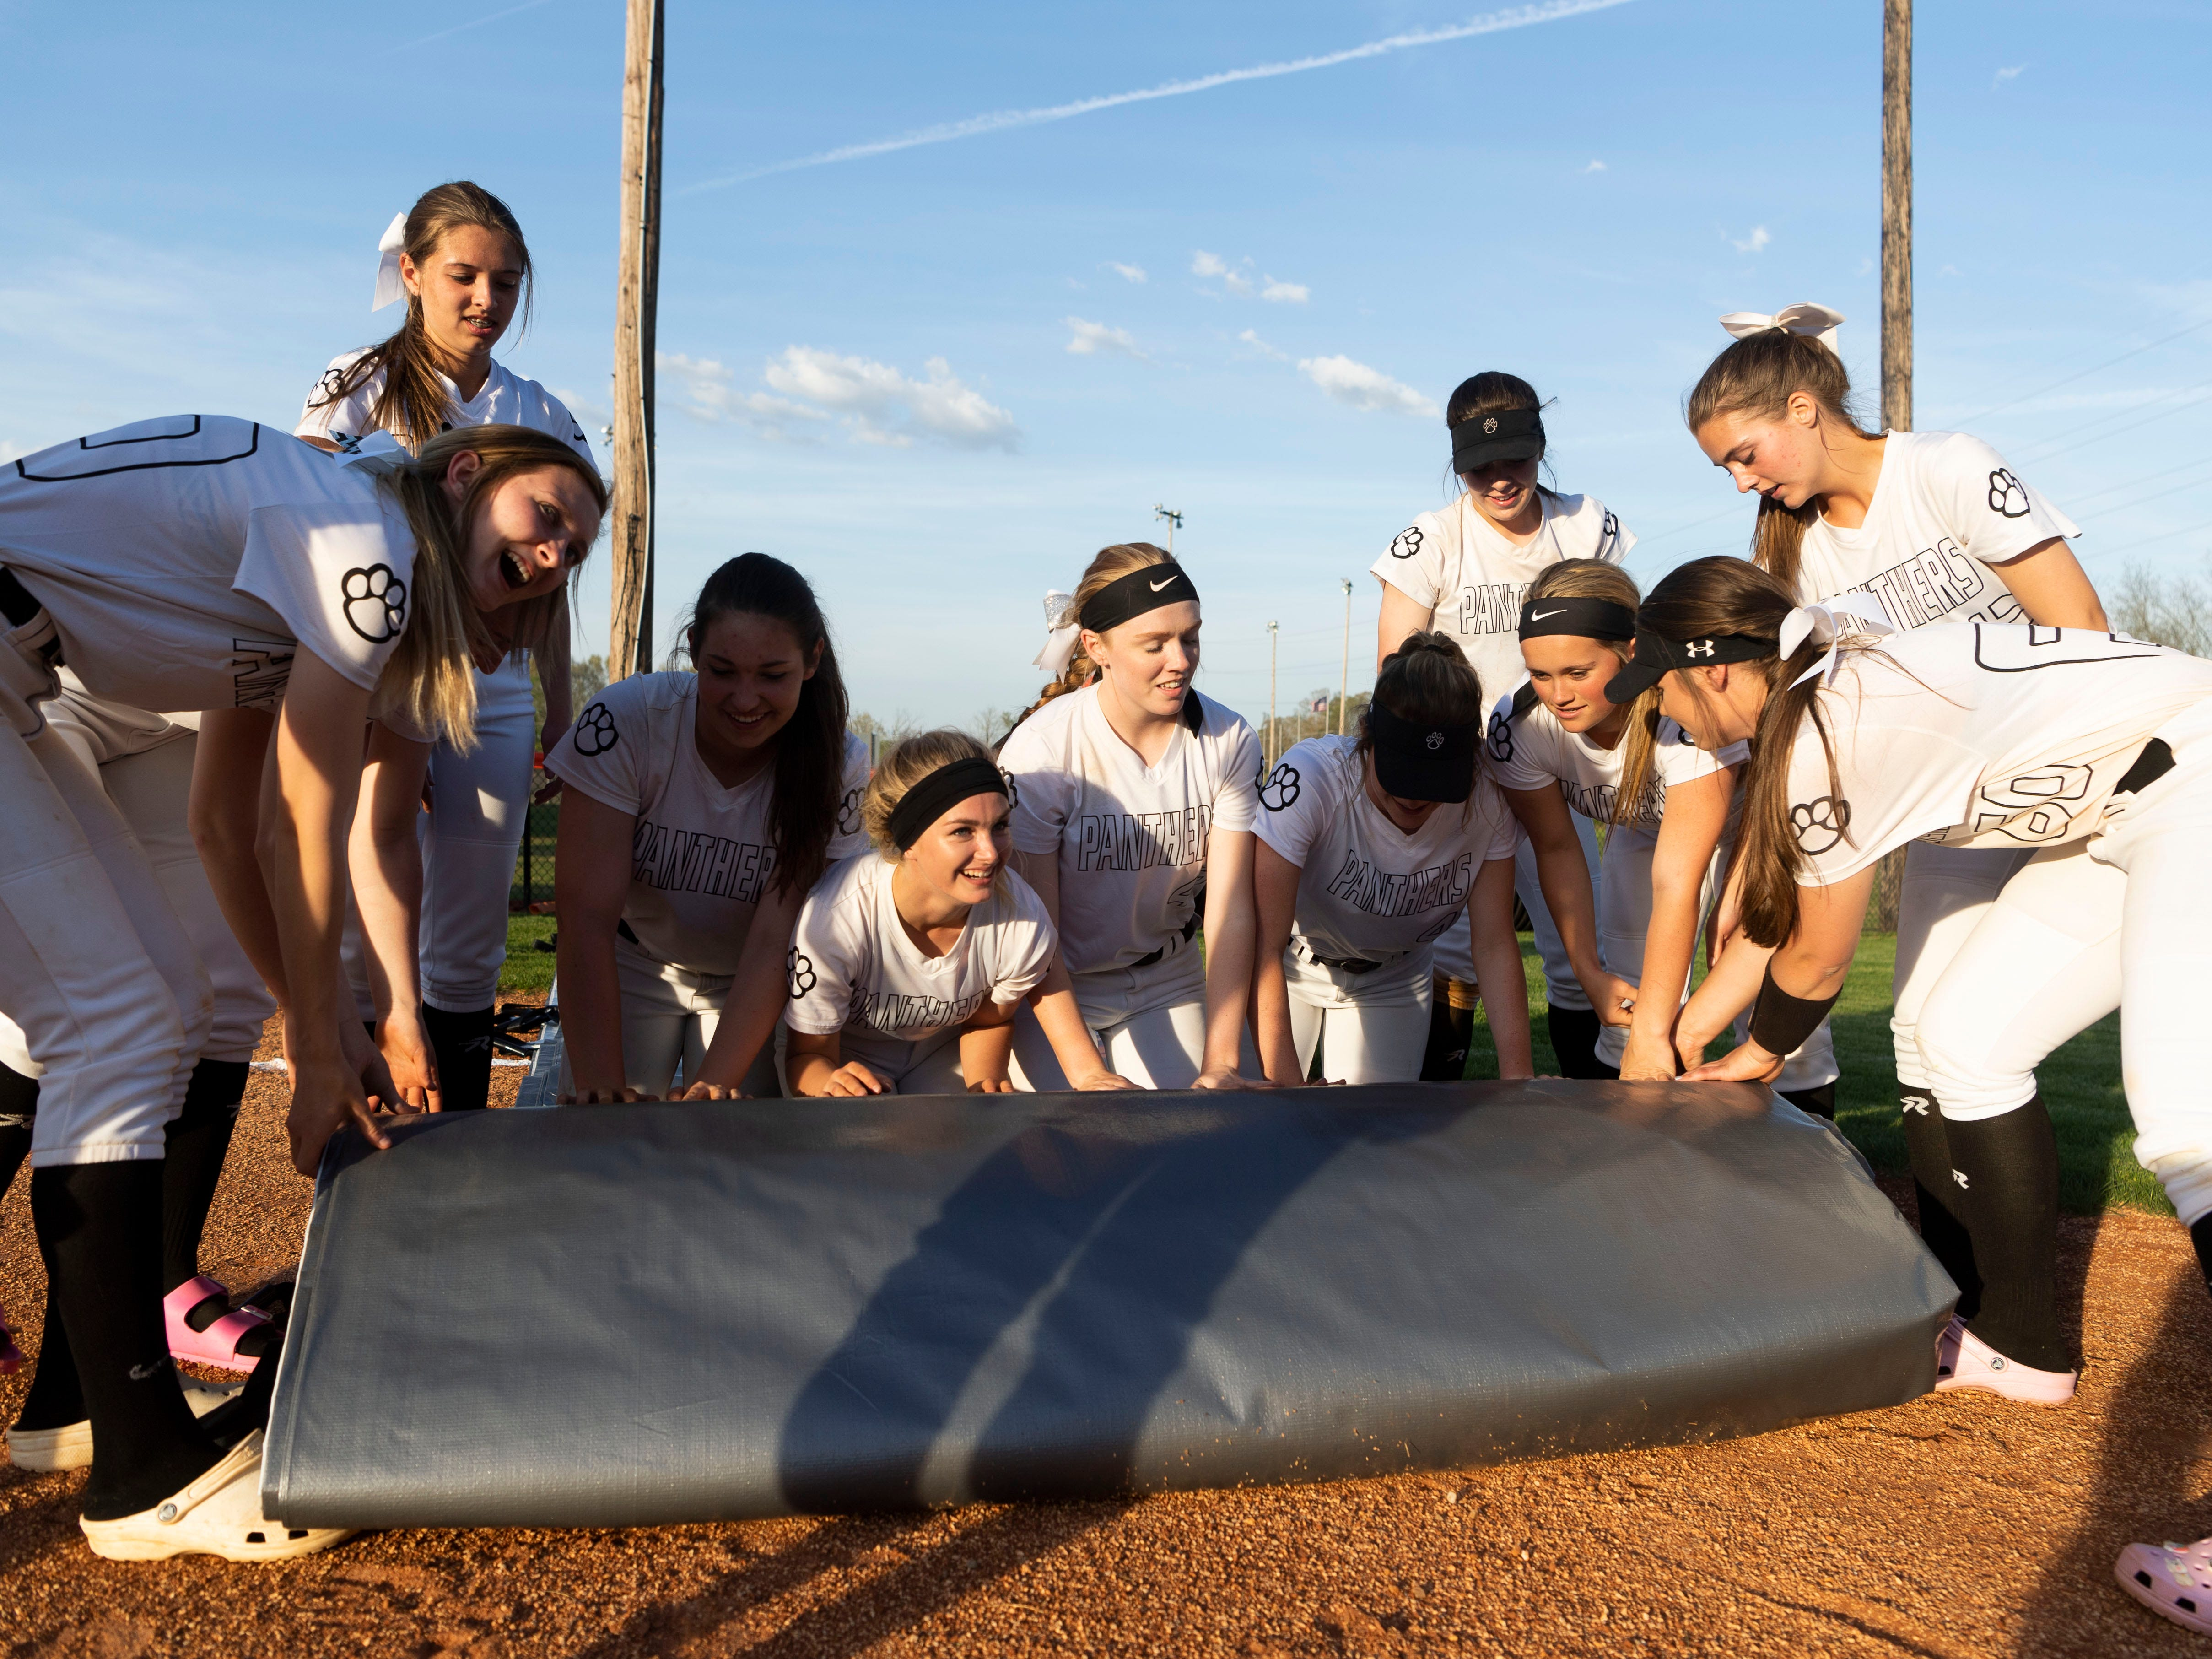 Powell players work together to unroll the tarp used to cover the infield after their game against Central on Thursday, April 11, 2019. It was the team's first game at home after rains destroyed the field earlier in the year.